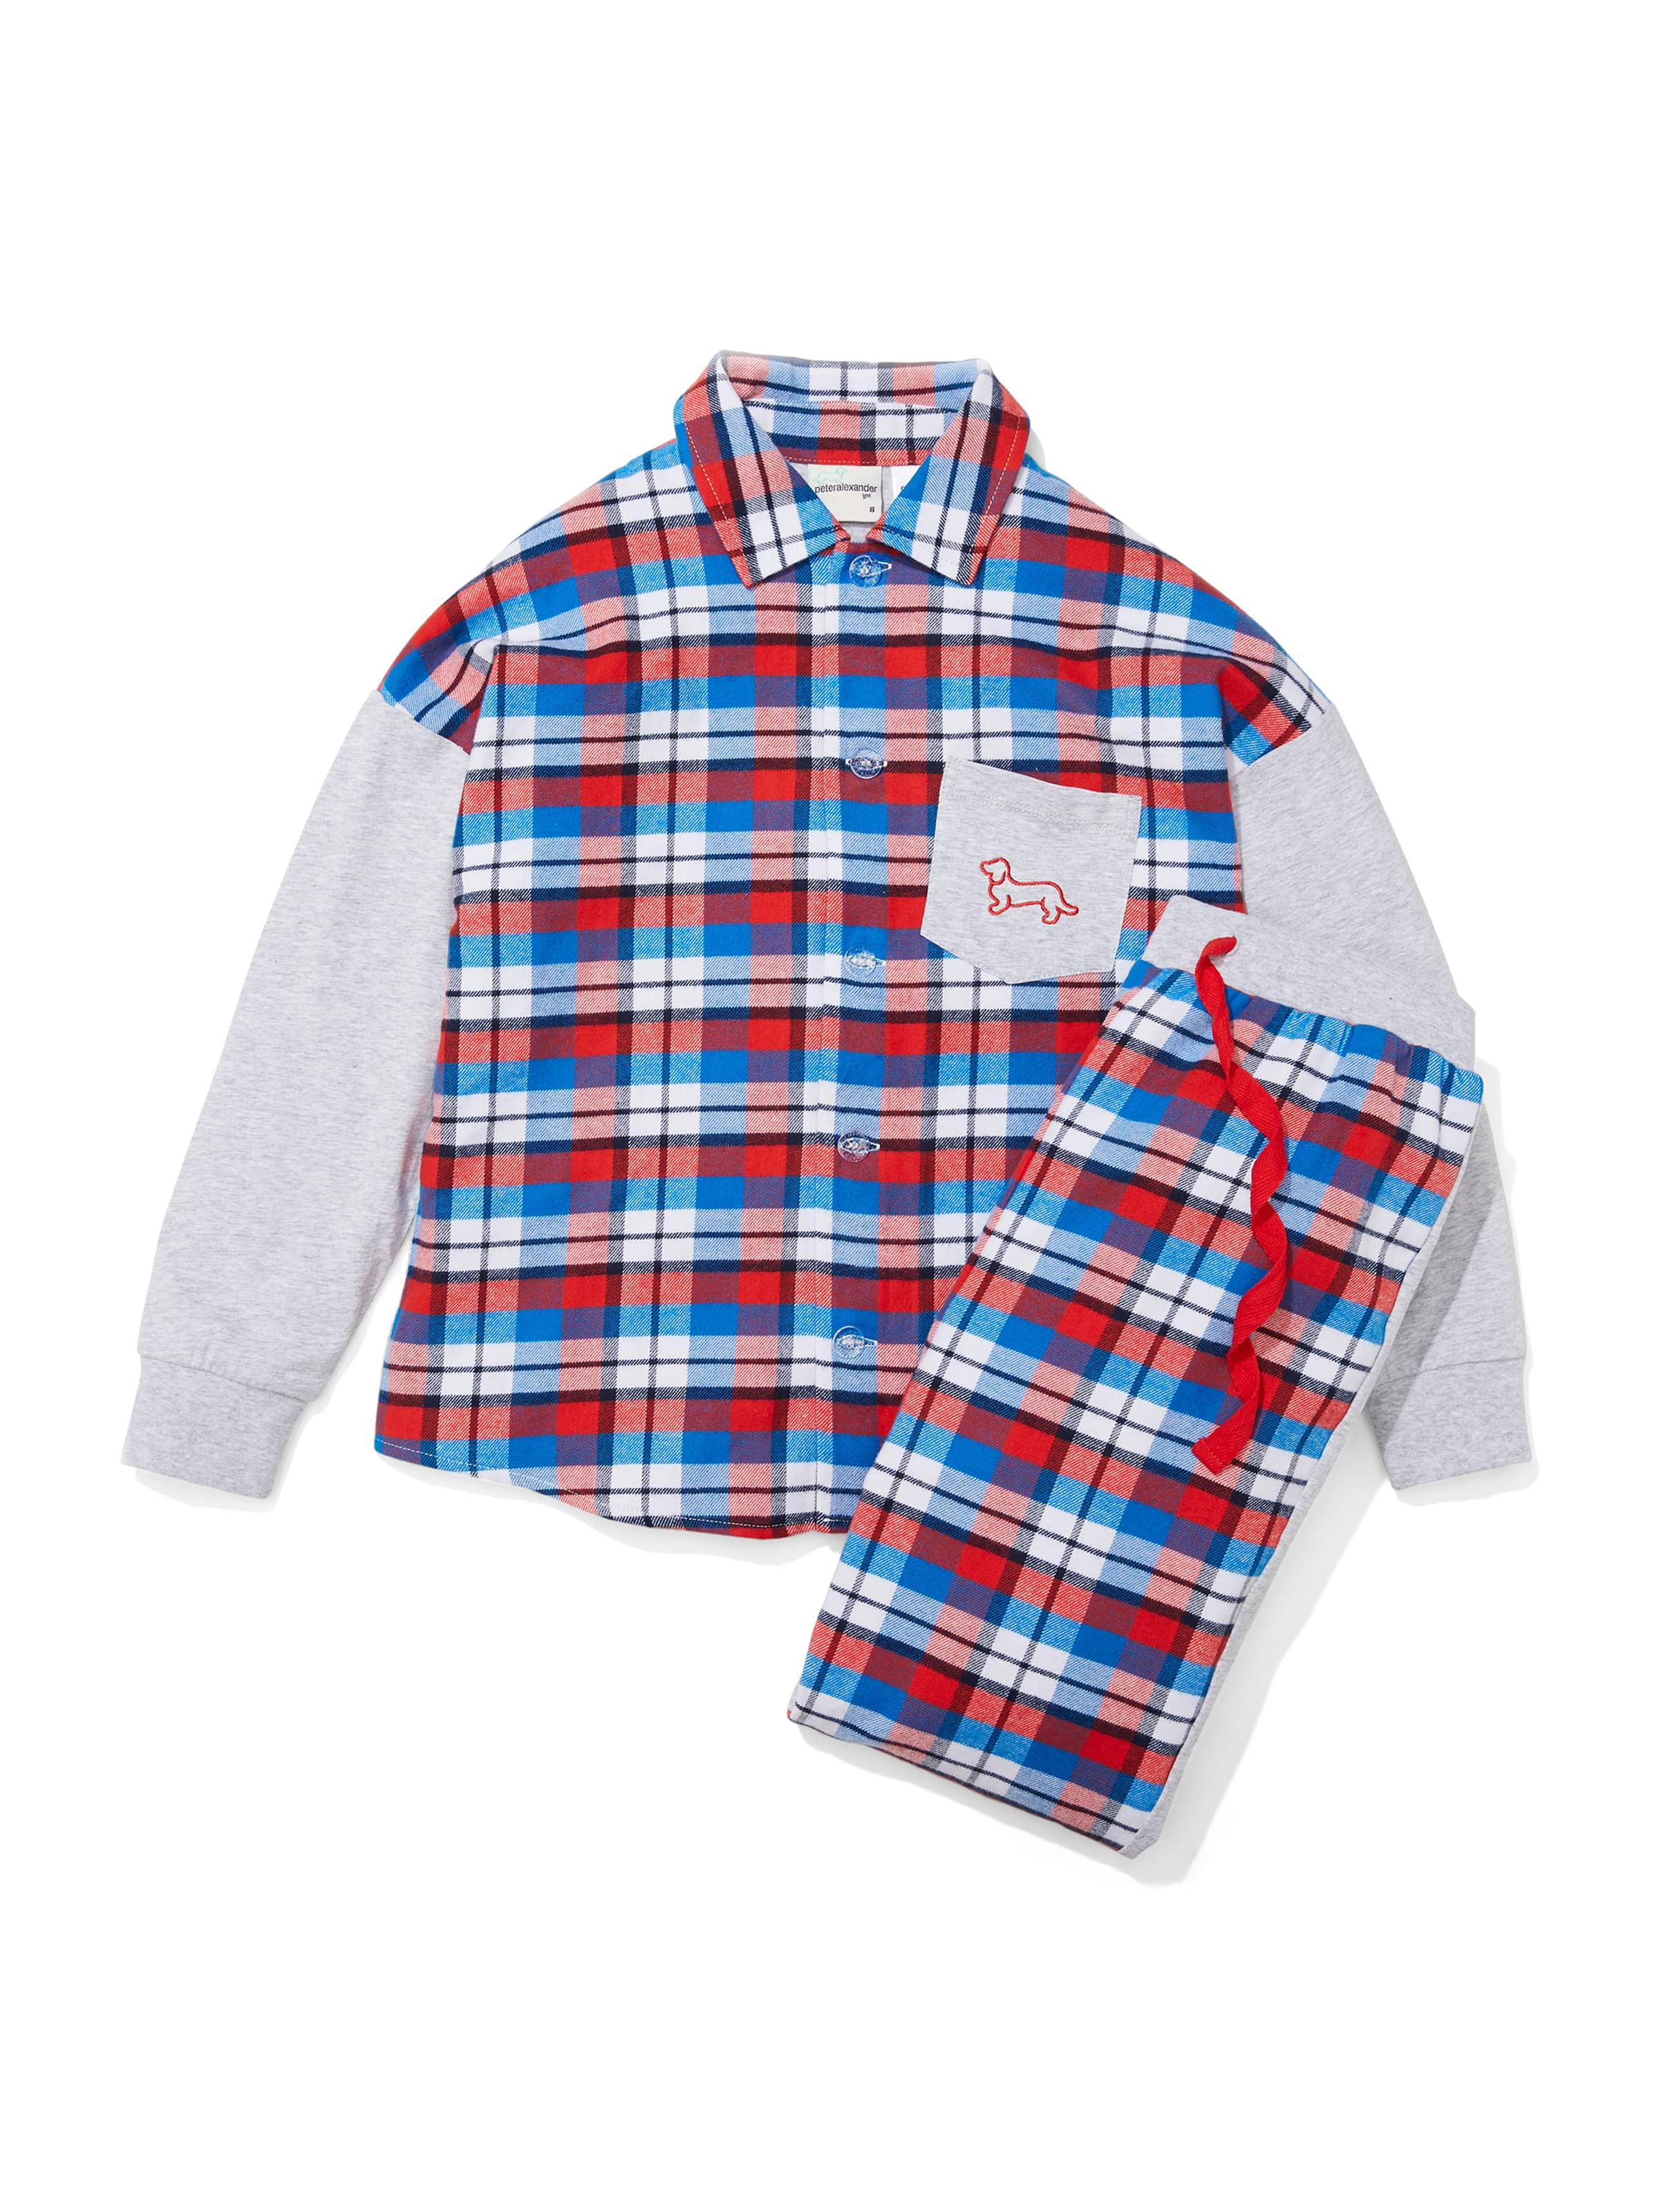 Kids Check Flannelette Pj Set